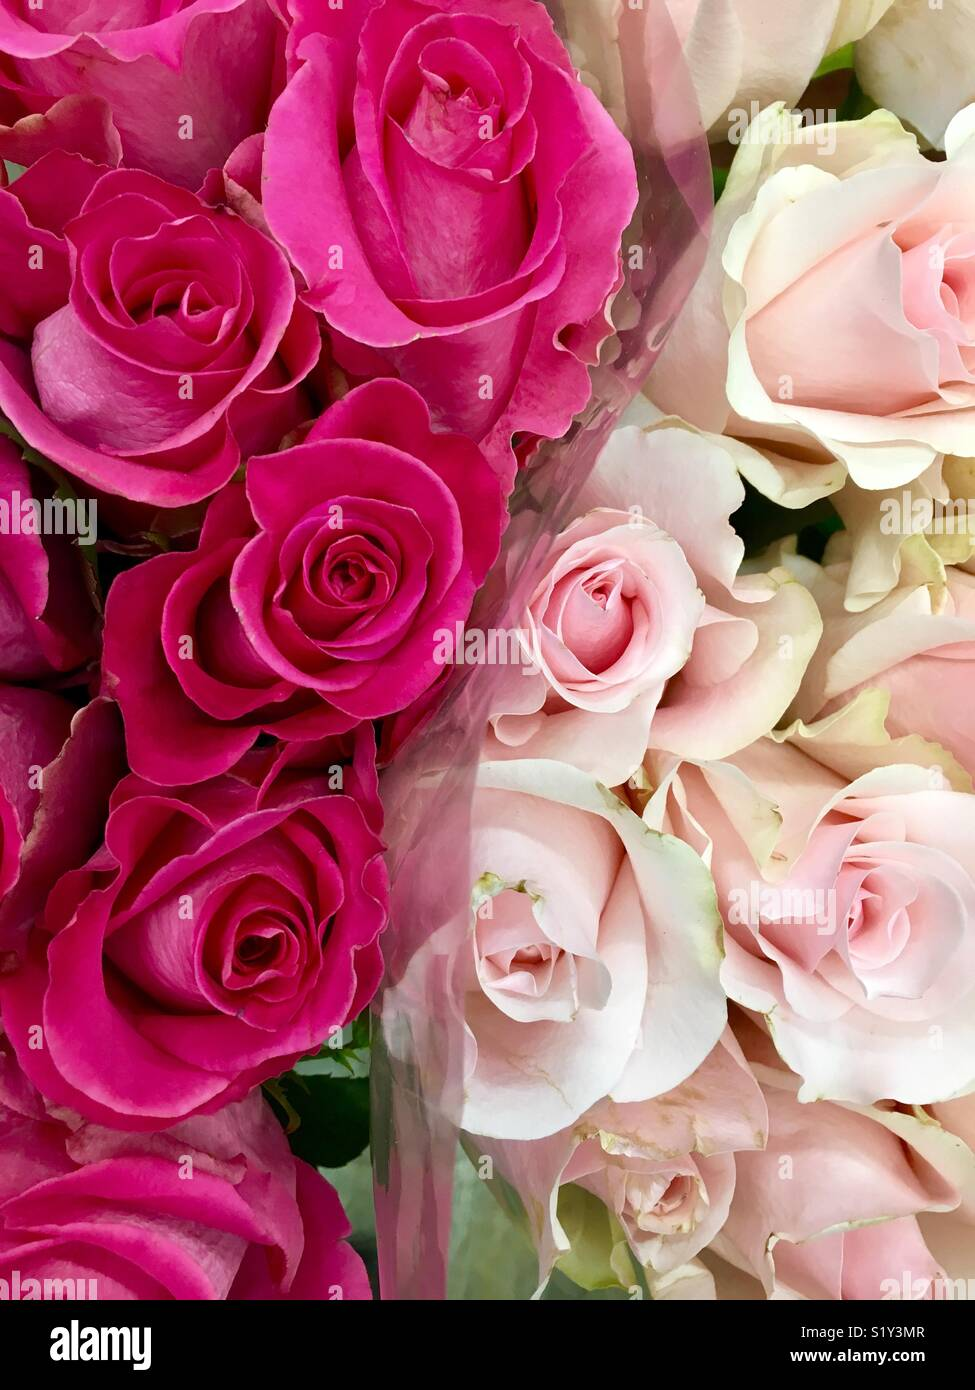 Two Pink Bouquets Of Roses One Dark And One Light Side By Side Stock